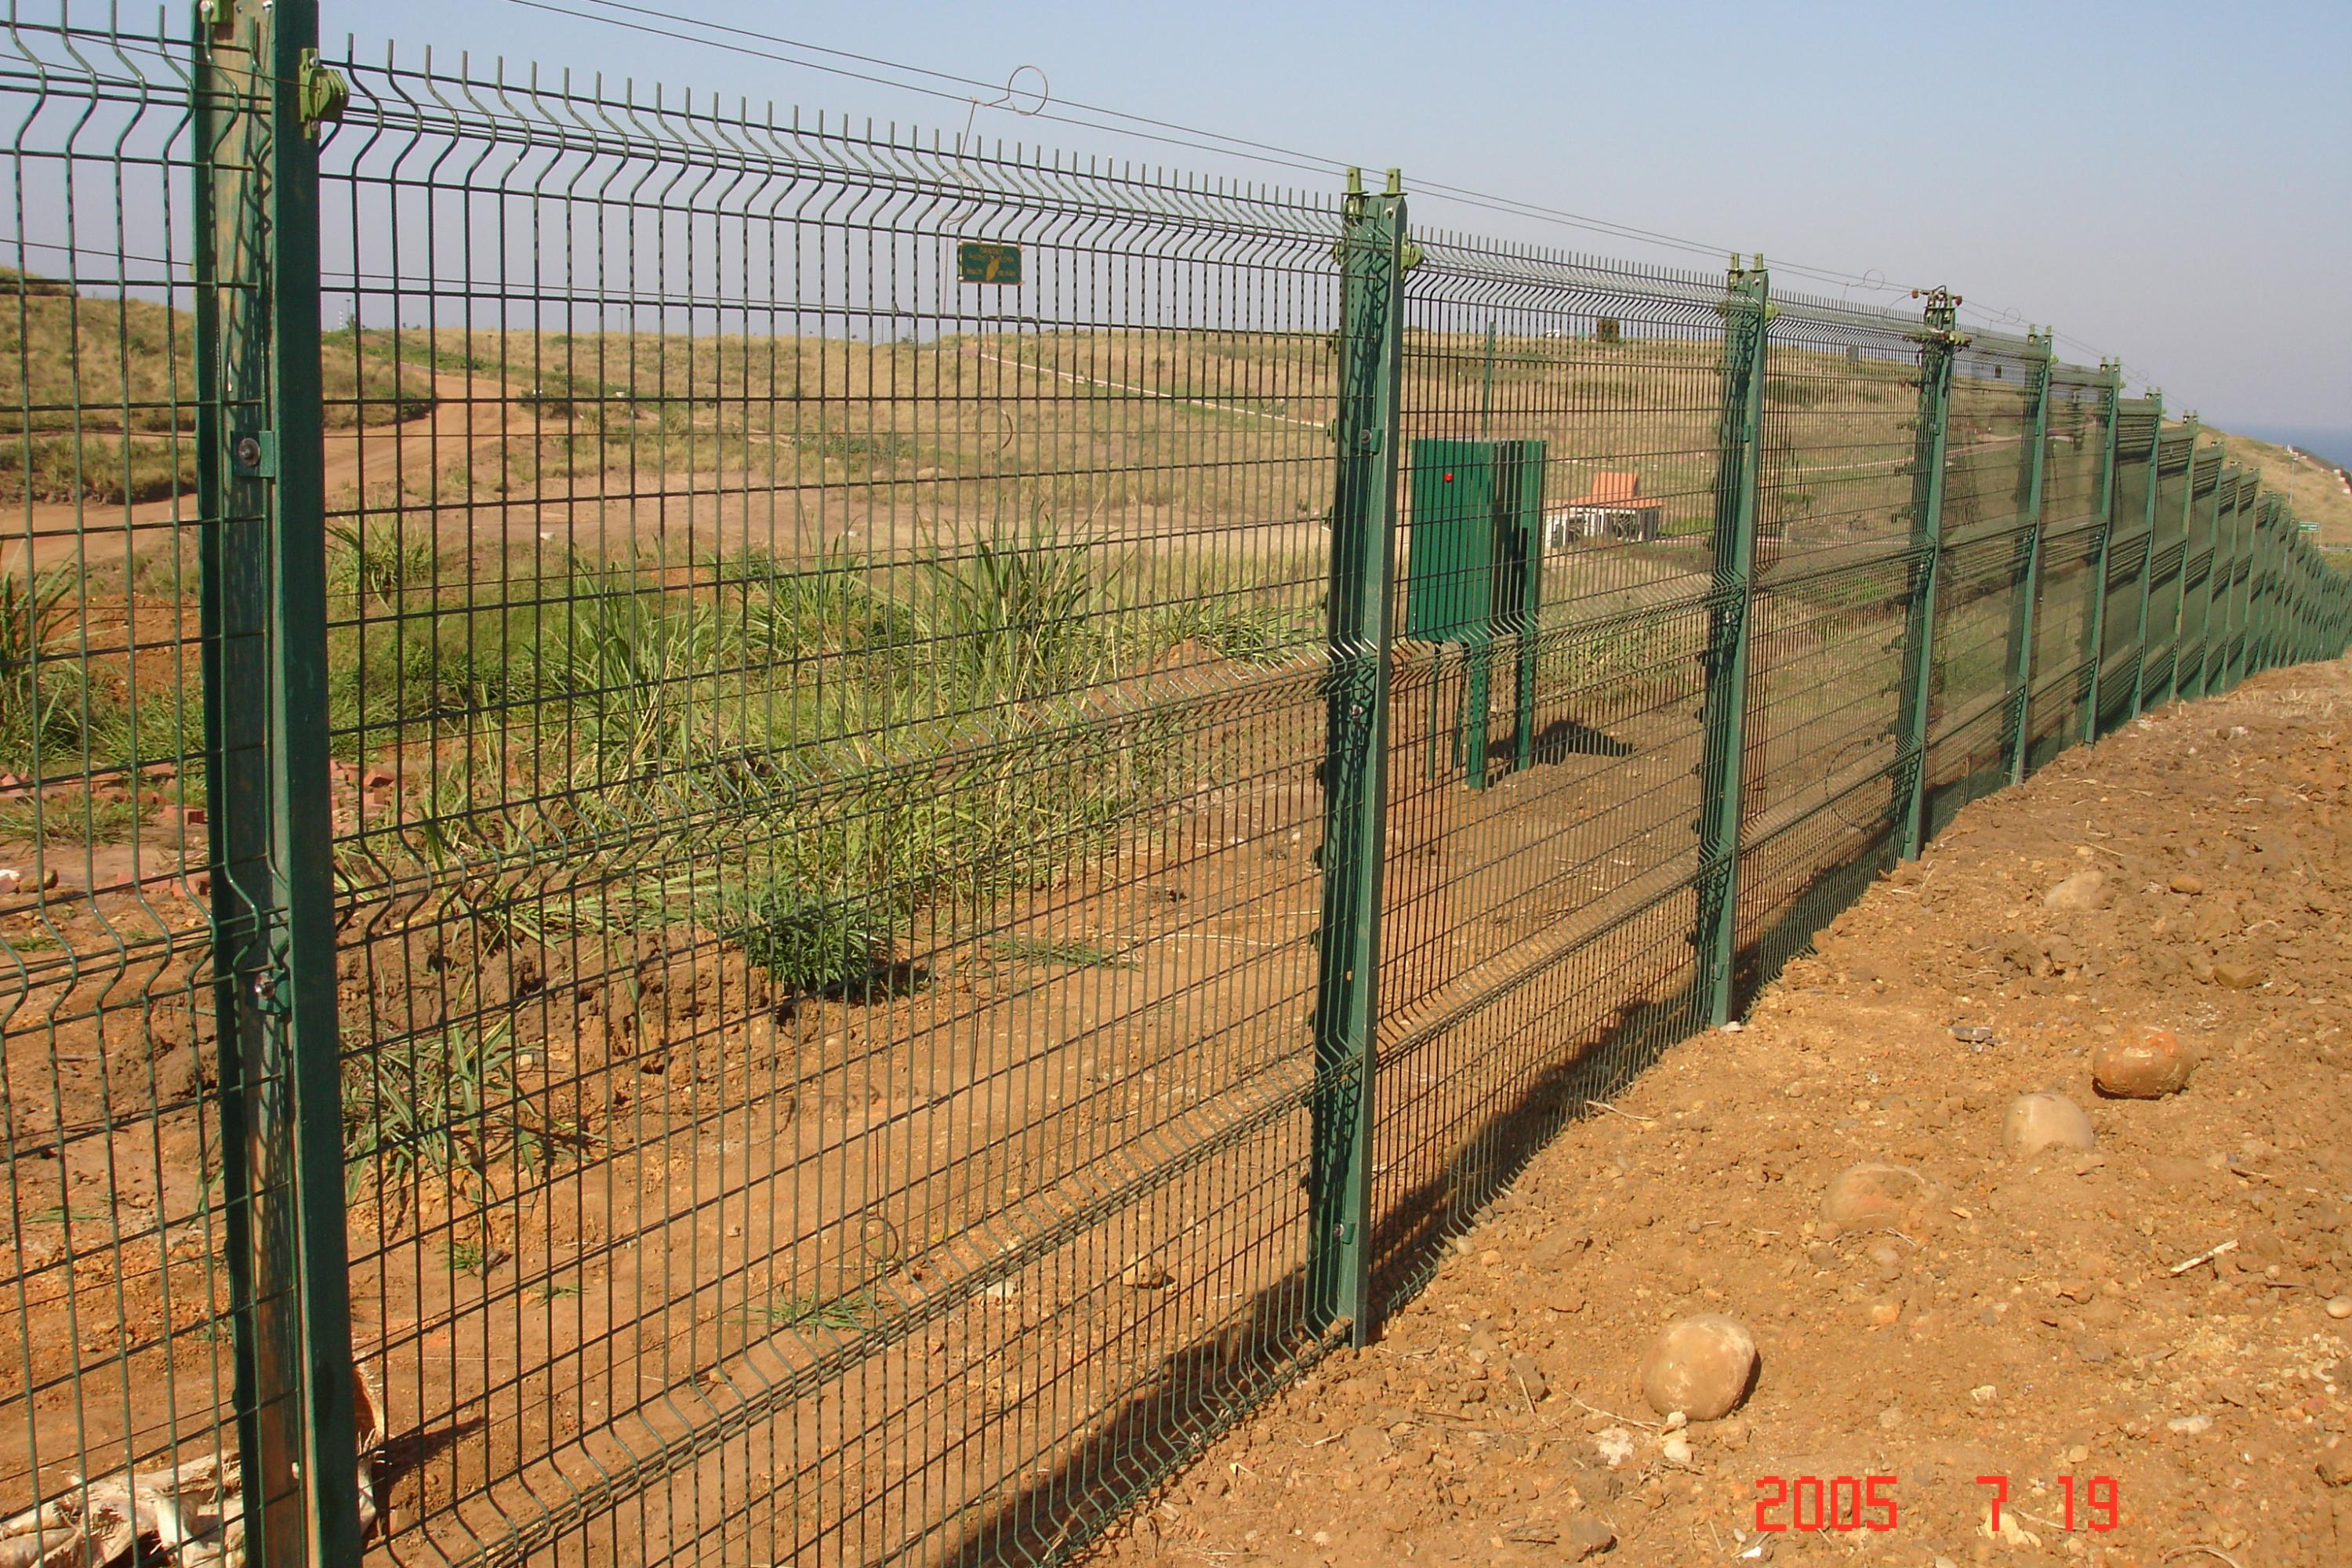 Farm/Game Fencing